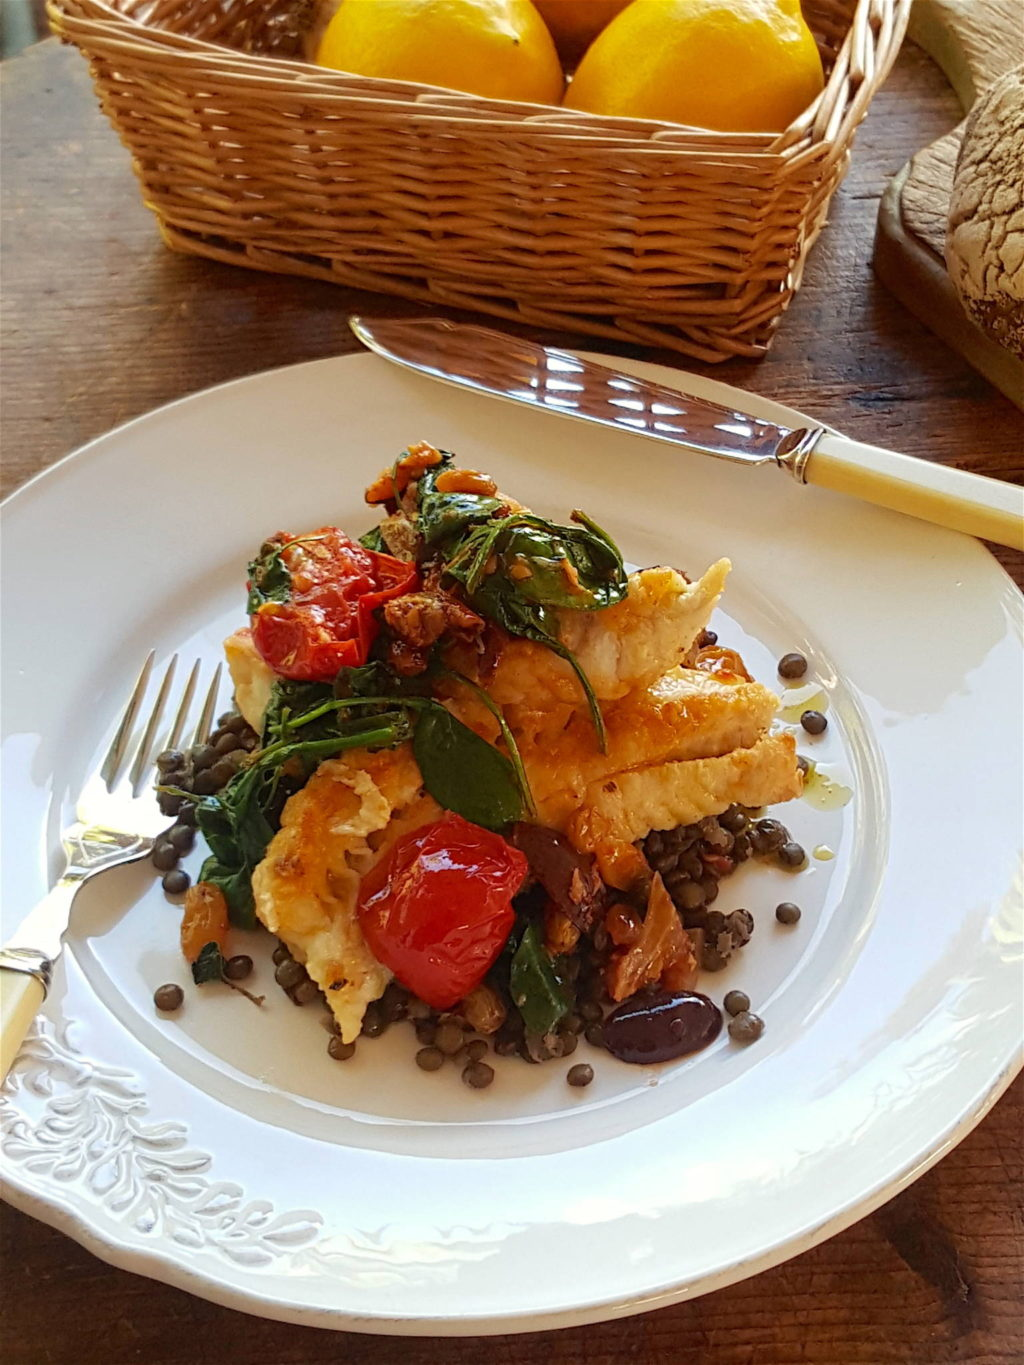 Gingered Fish with Lentils